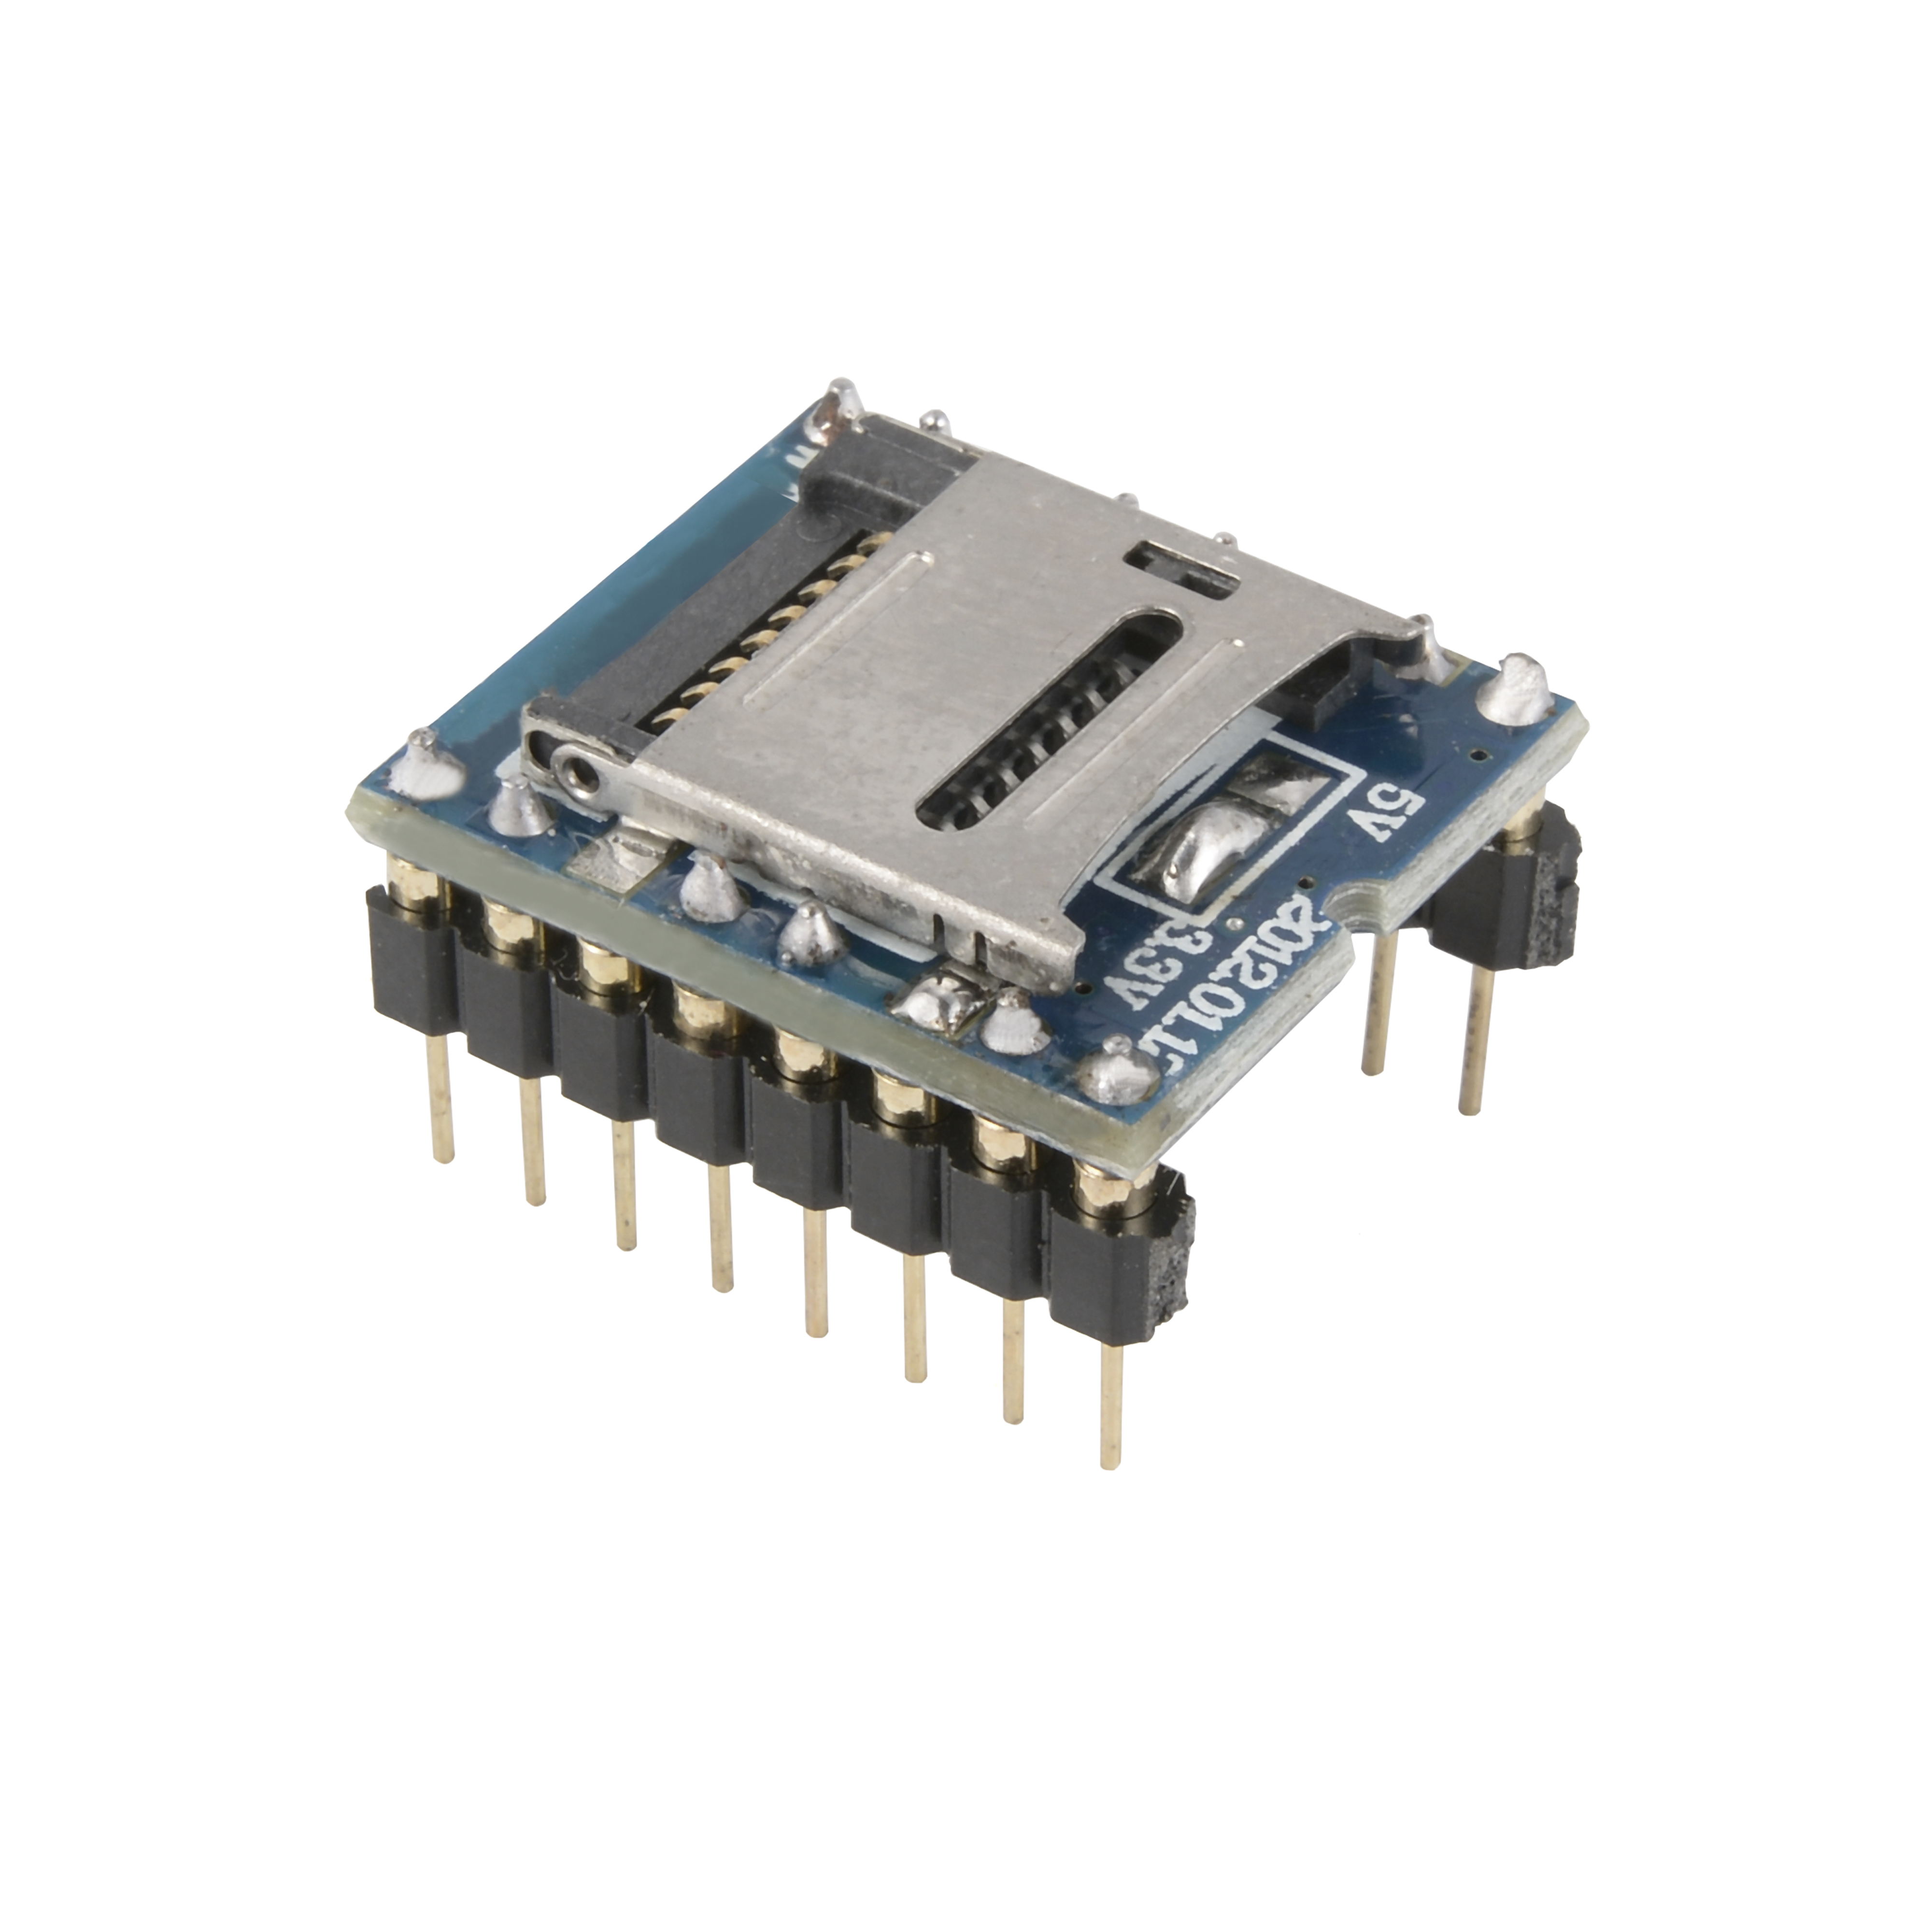 U-disk Audio Player TF SD Card Voice Module MP3 Sound WTV020-SD-16P for Arduino TE399(China (Mainland))